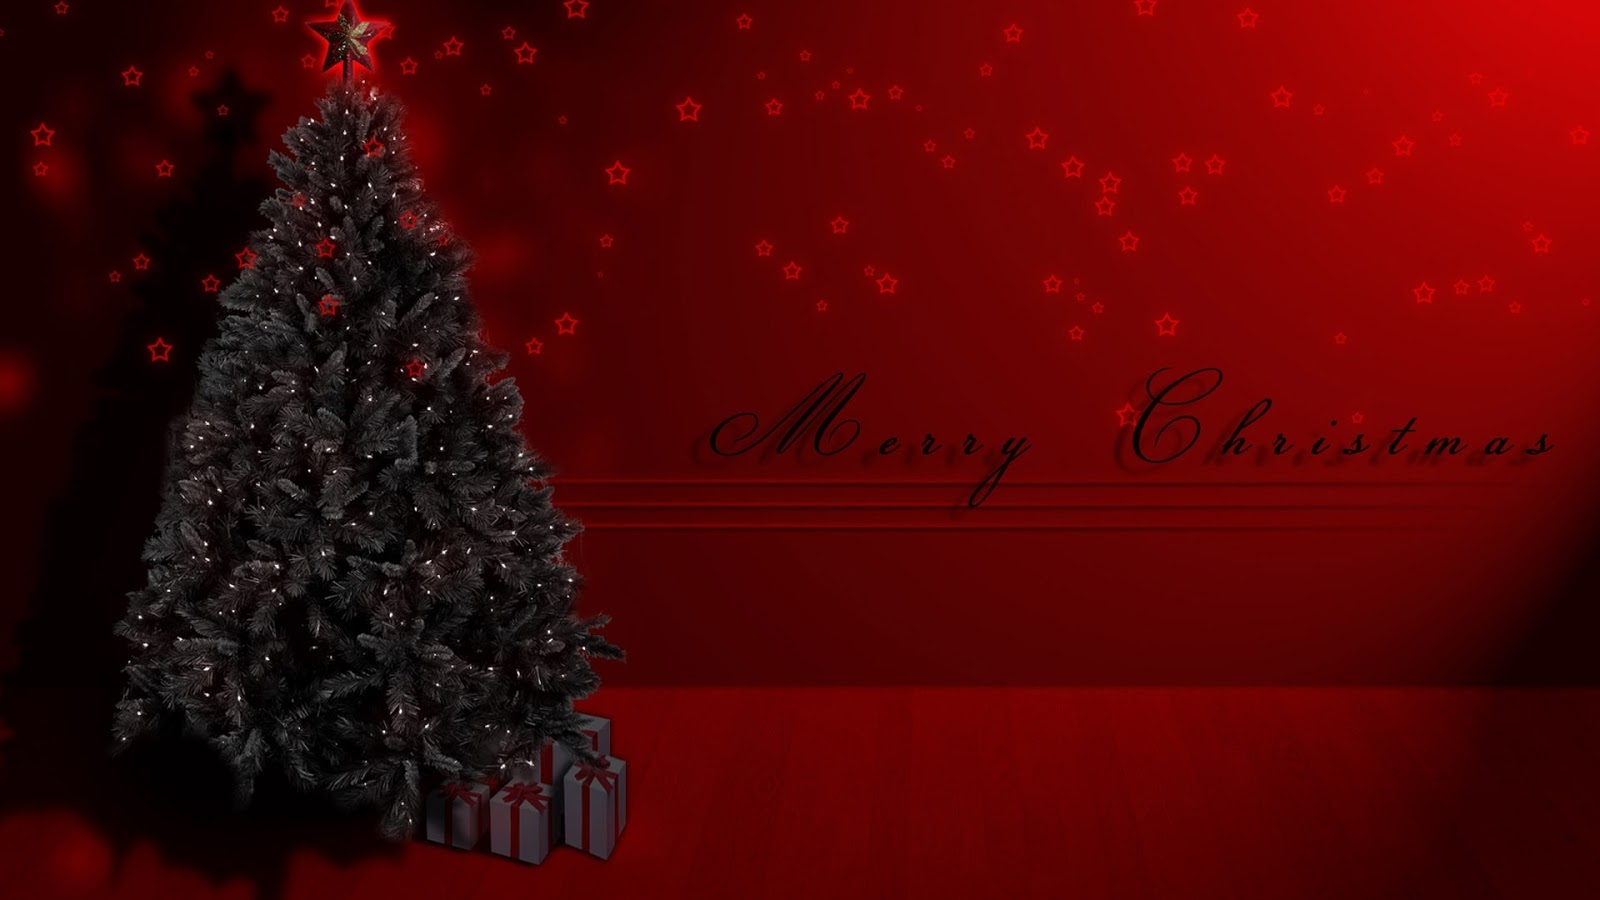 Pubg Christmas Wallpaper: Christmas HD Wallpapers 1080p